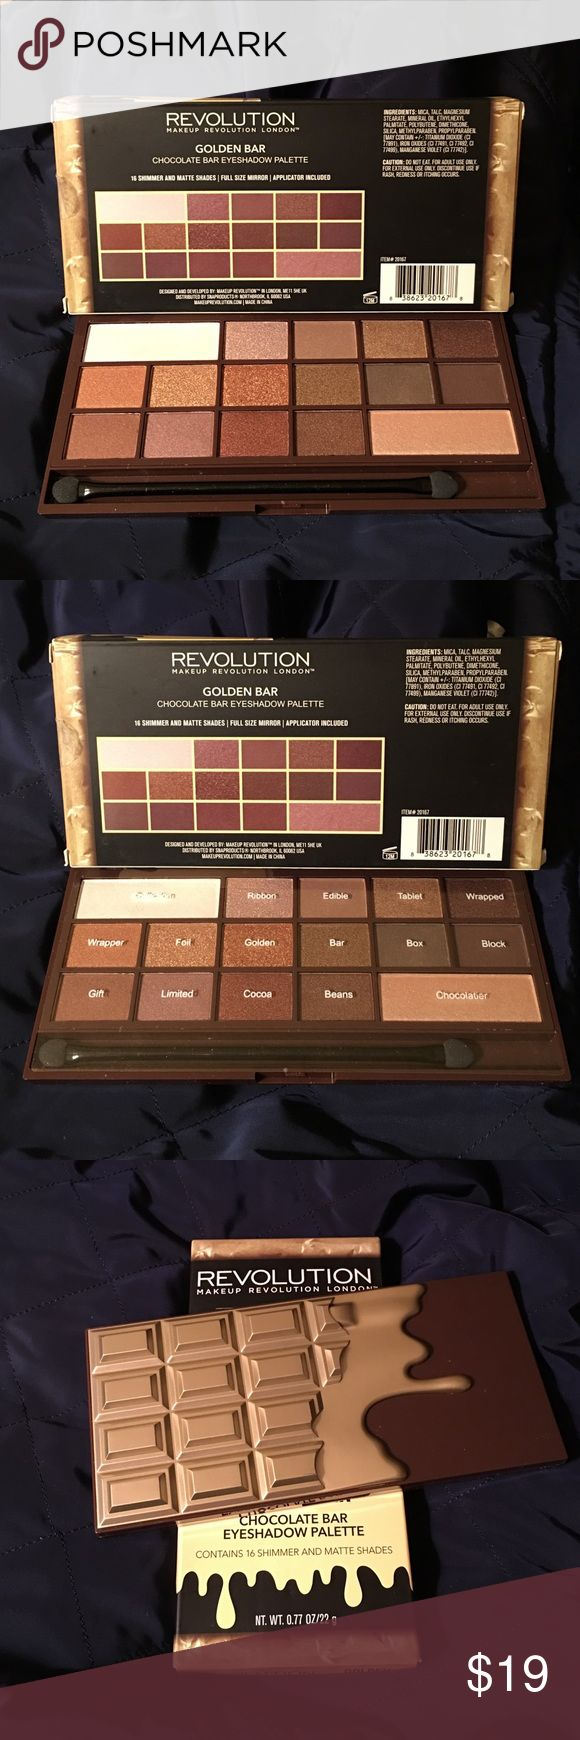 Makeup revolution golden bar eyeshadow palette makeup revolution s most luxurious chocolate bar palette yet this